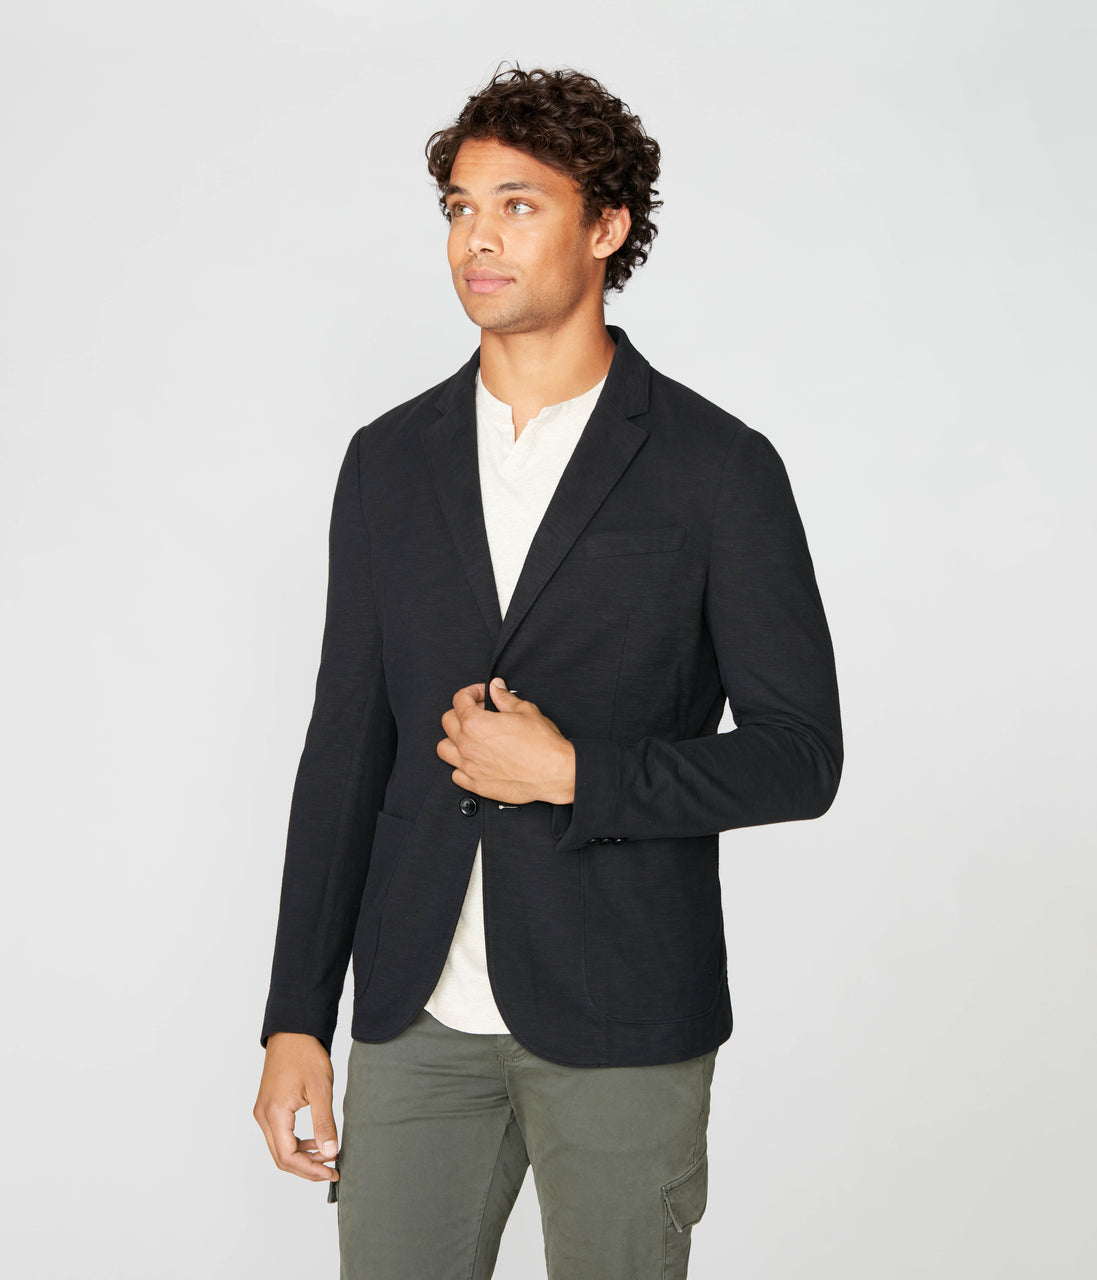 Downtown Soft Blazer in Soft Slub Jersey - Black - Good Man Brand - Downtown Soft Blazer in Soft Slub Jersey - Black